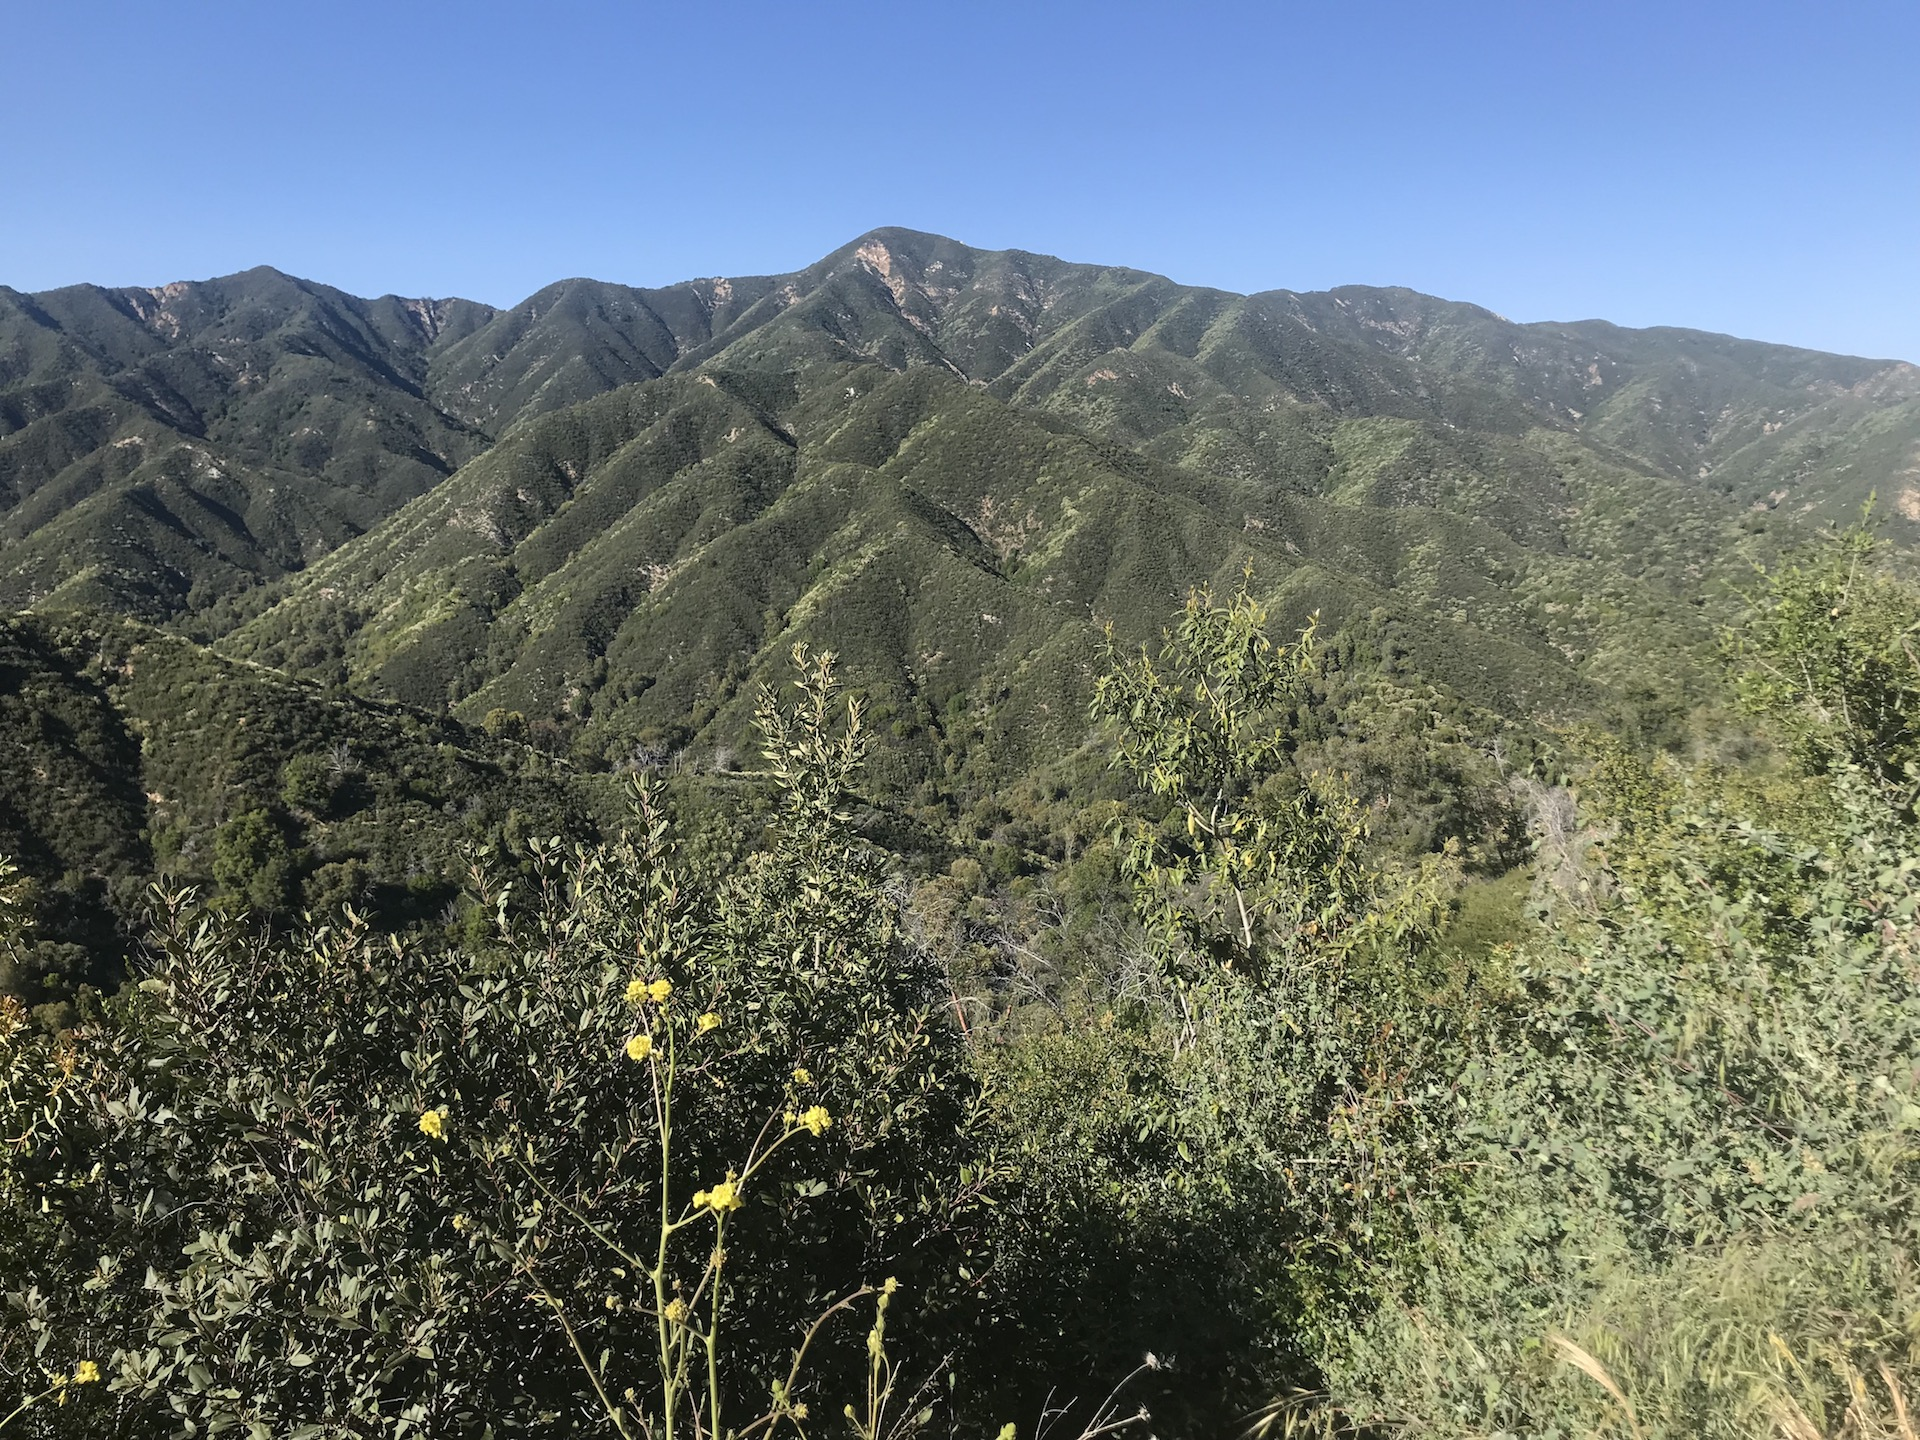 The view along Nacimiento Fergusson road